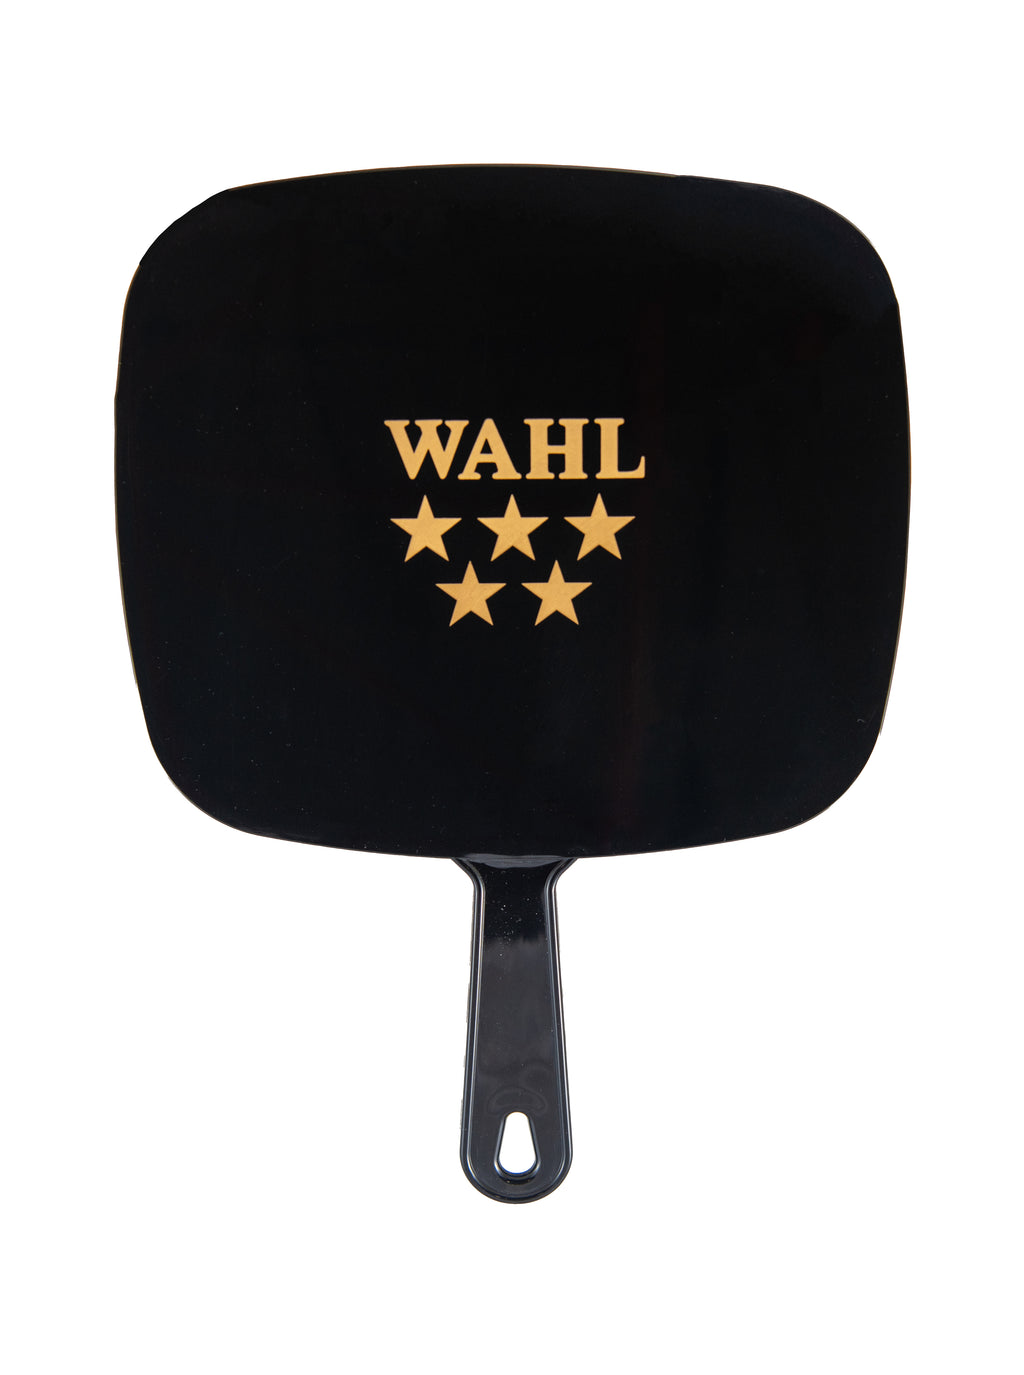 5 Star Handheld Mirror